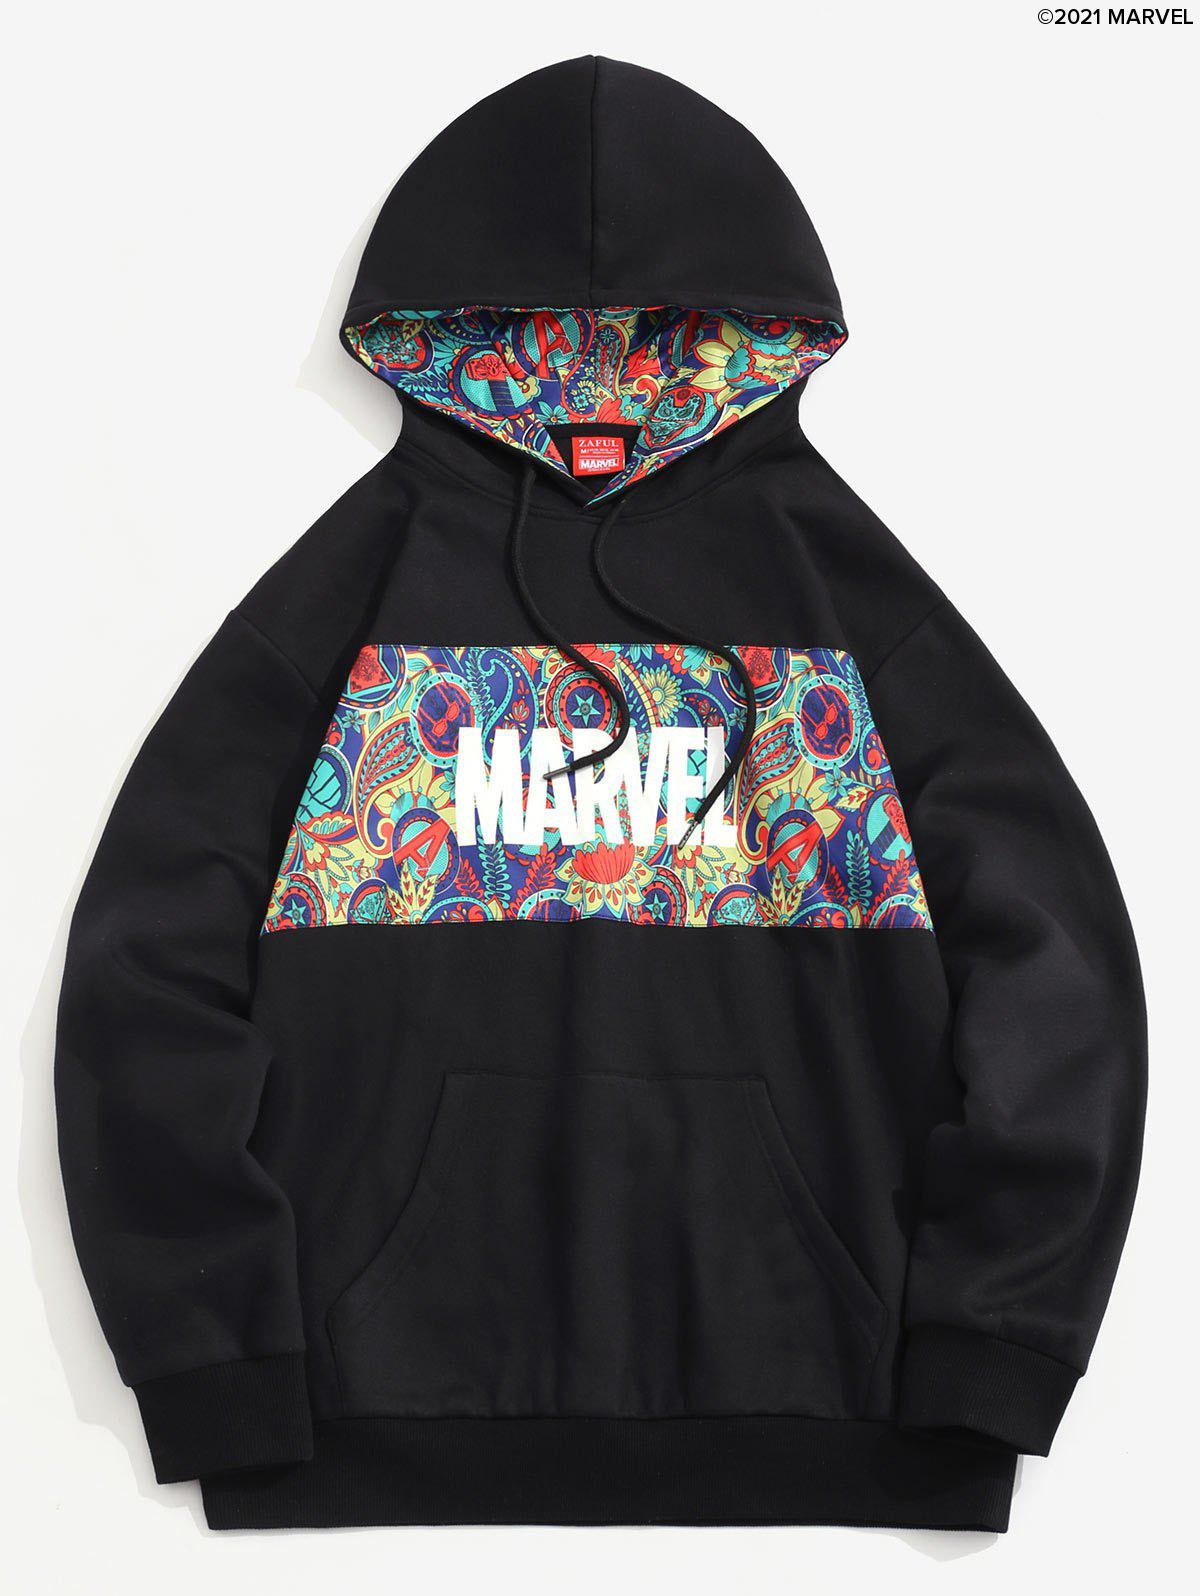 Buy Marvel Spider-Man Paisley Print Kangaroo Pocket Fleece Hoodie